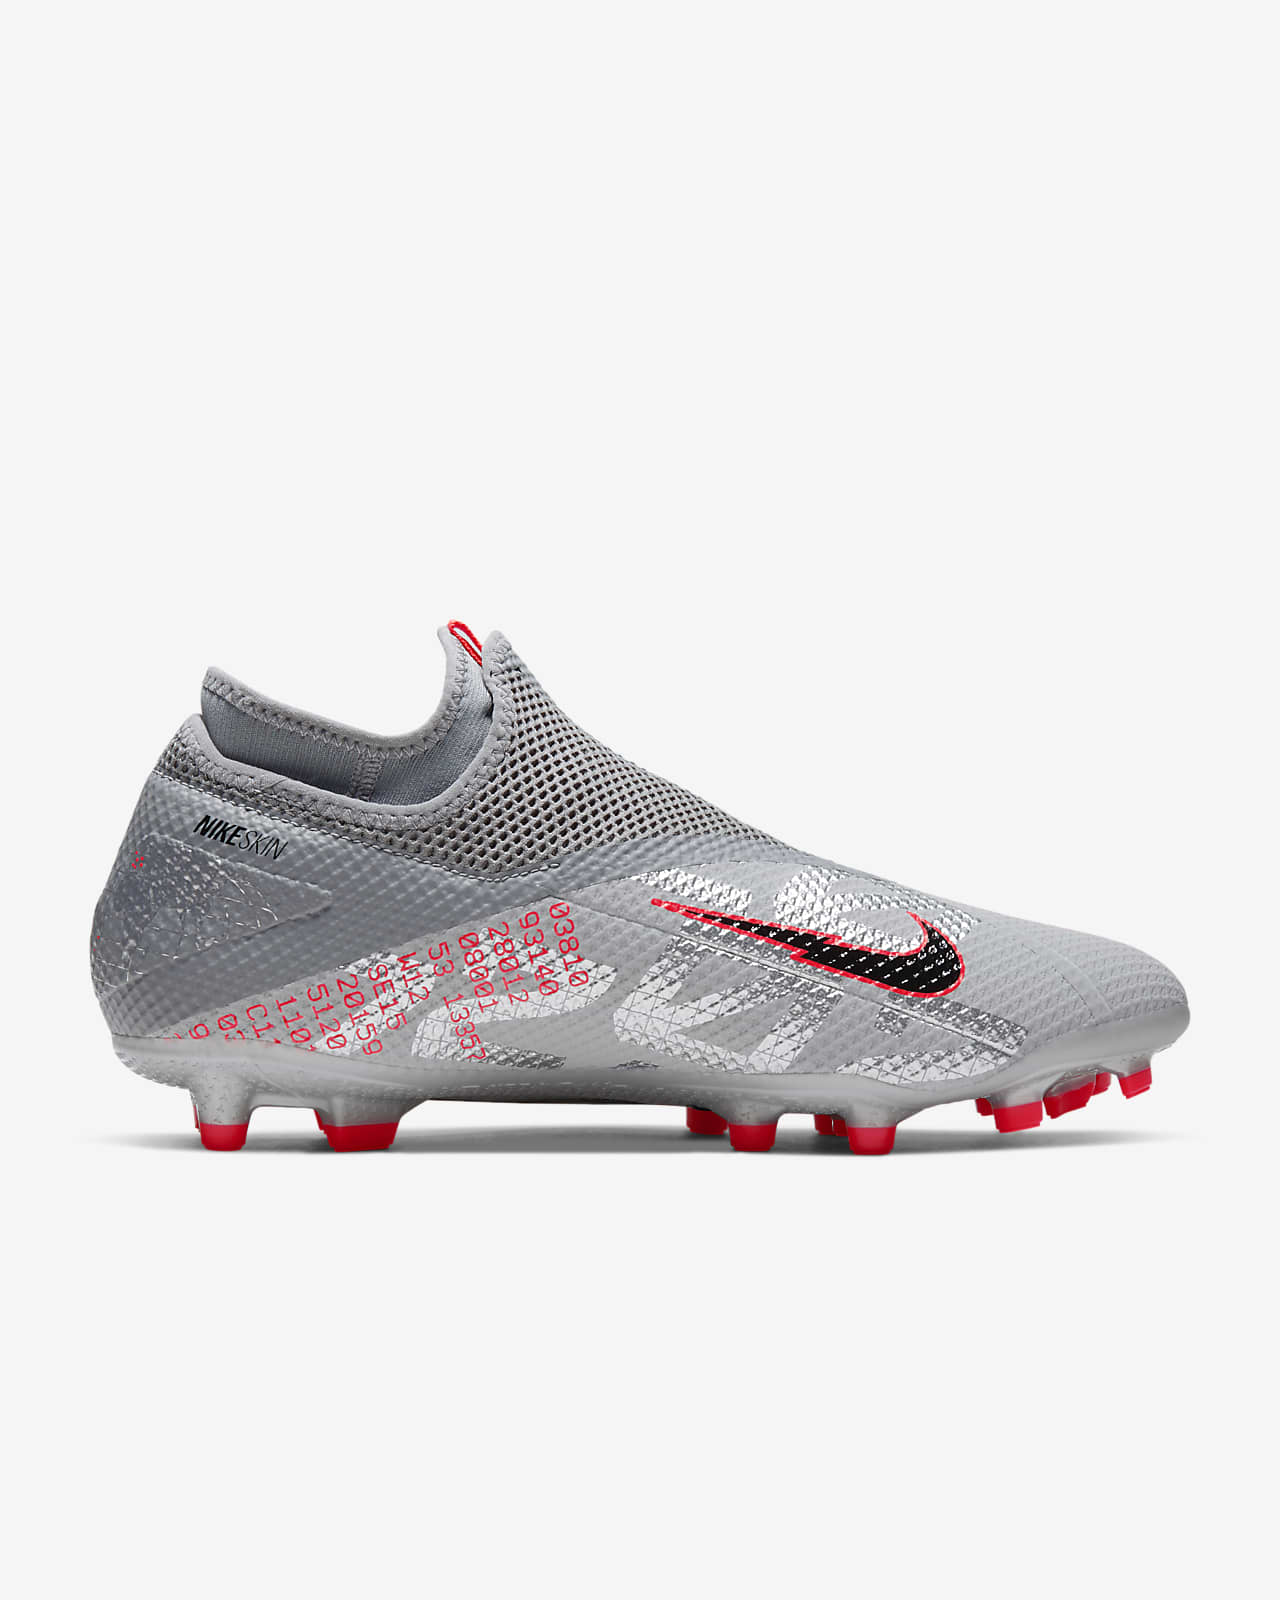 Chaussure de football multi surfaces à crampons Nike Phantom Vision 2 Academy Dynamic Fit MG